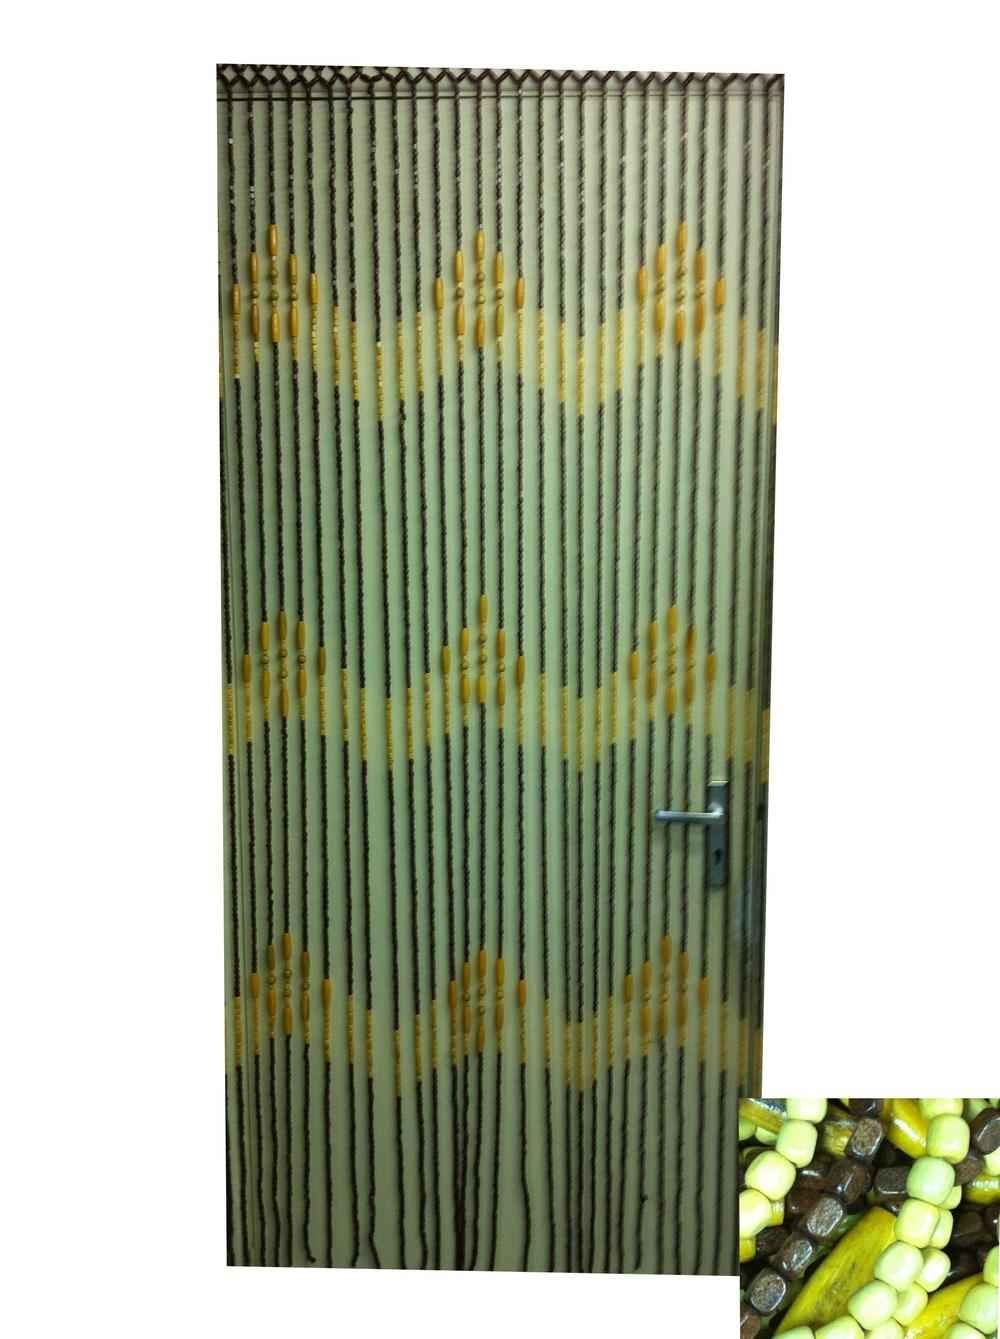 Bamboo Beaded Curtains For Windows Bamboo Curtains Pinterest